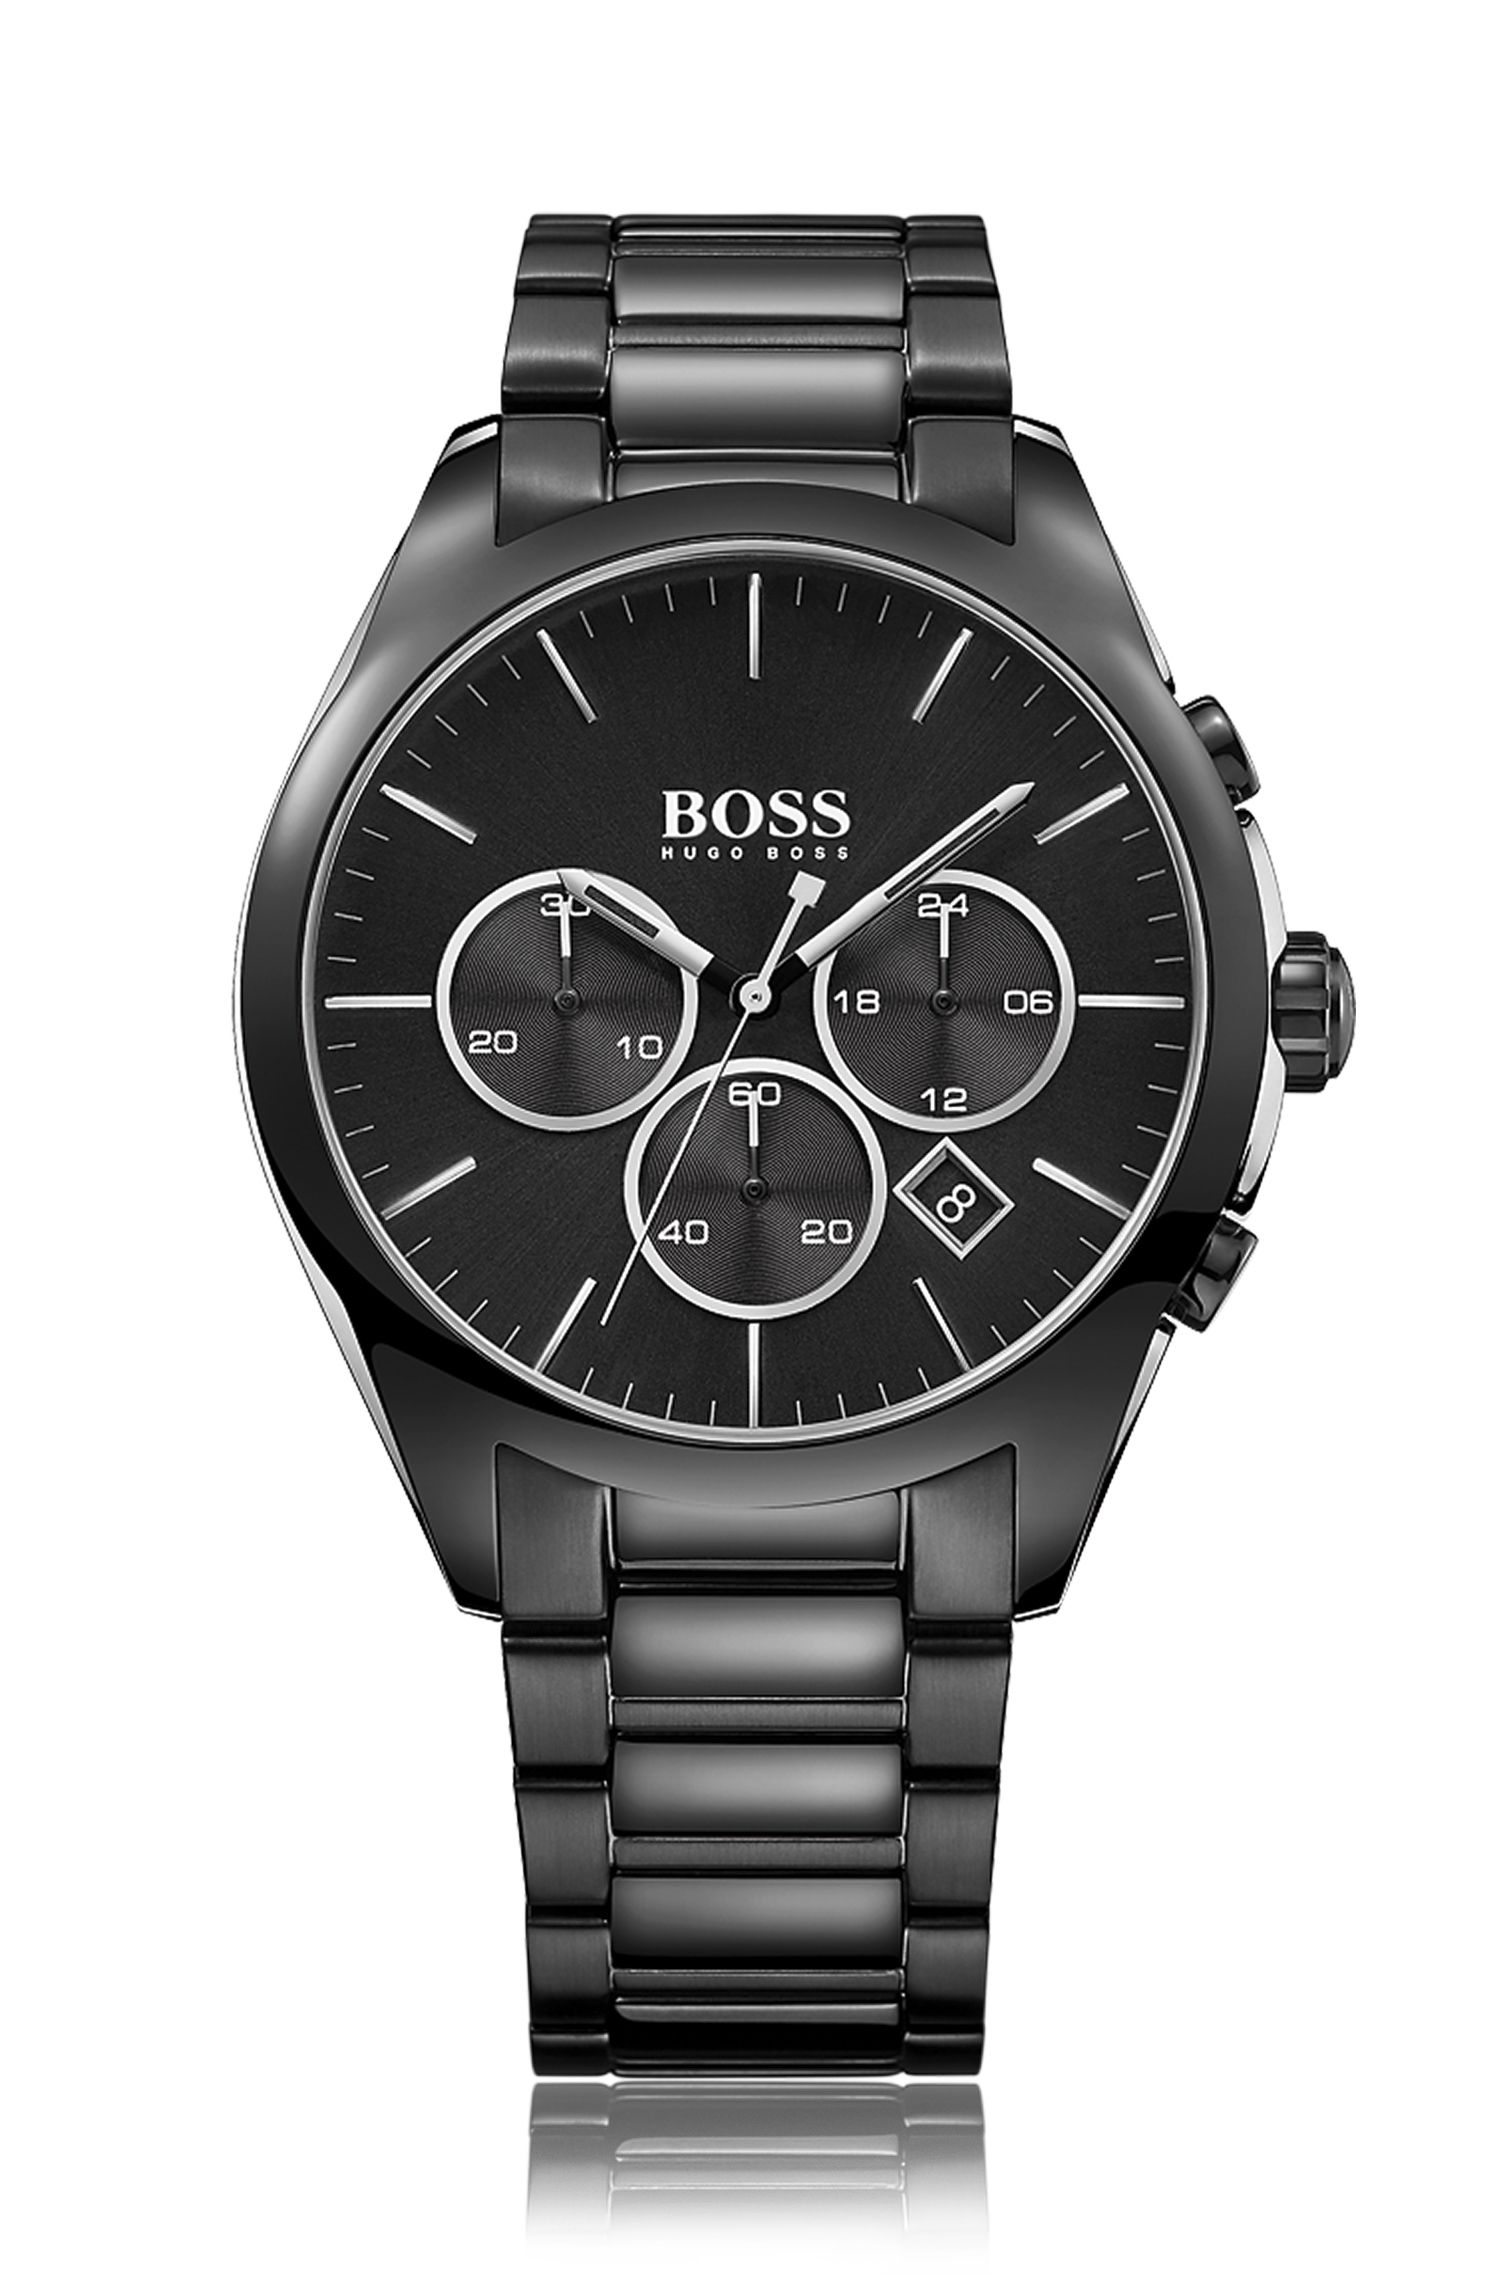 Onyx, Stainless Steel Chronograph Watch | 1513365, Assorted-Pre-Pack